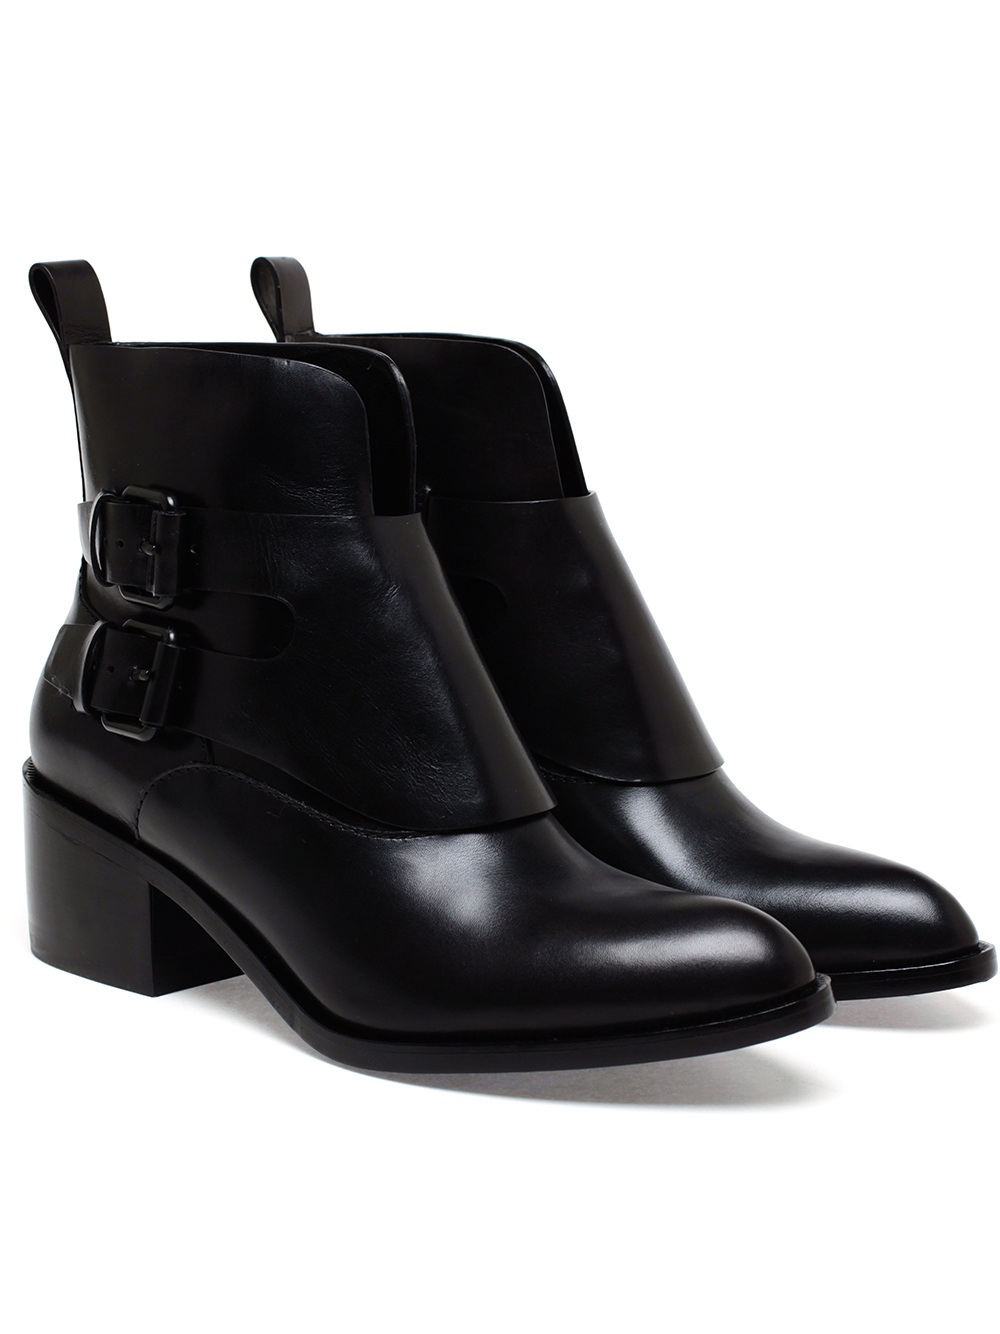 Womens Black Leather Ankle Boots rr47jWzw